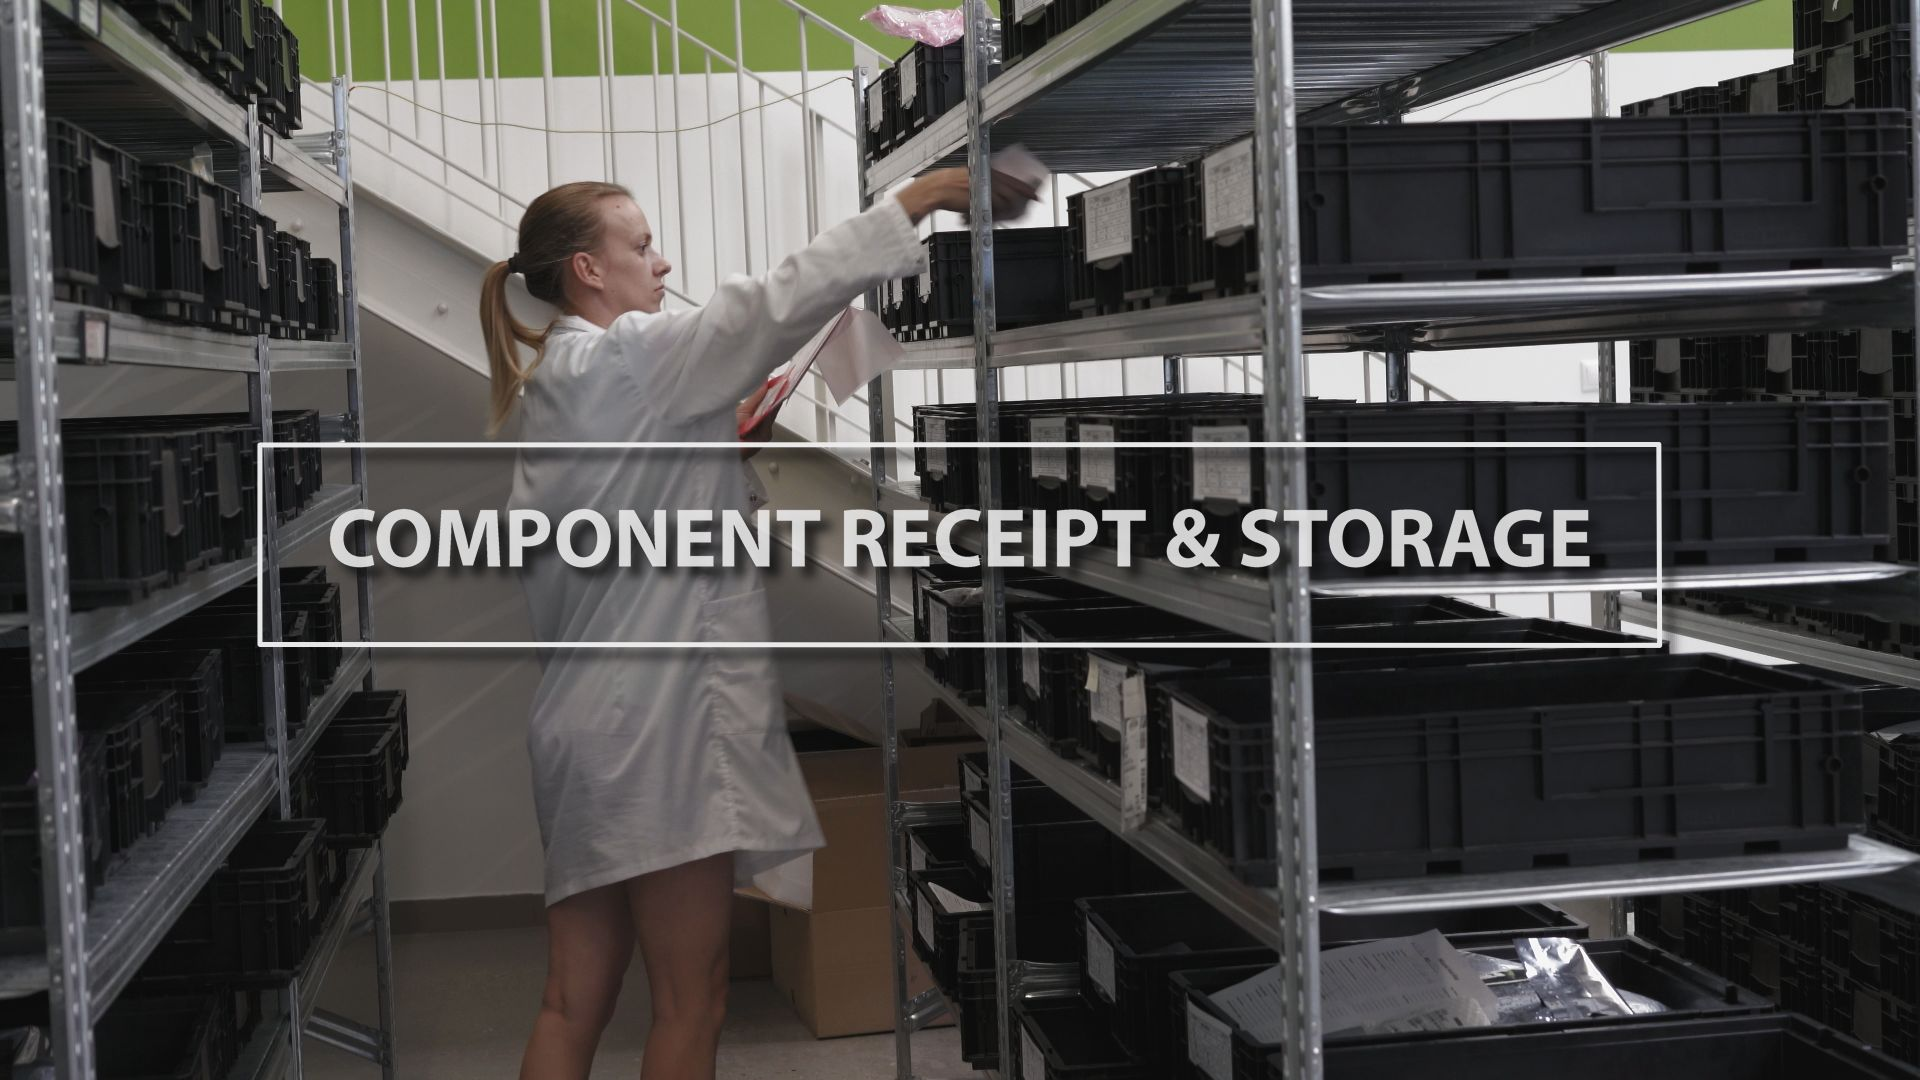 Technology Thursday: Component Receipt & Storage